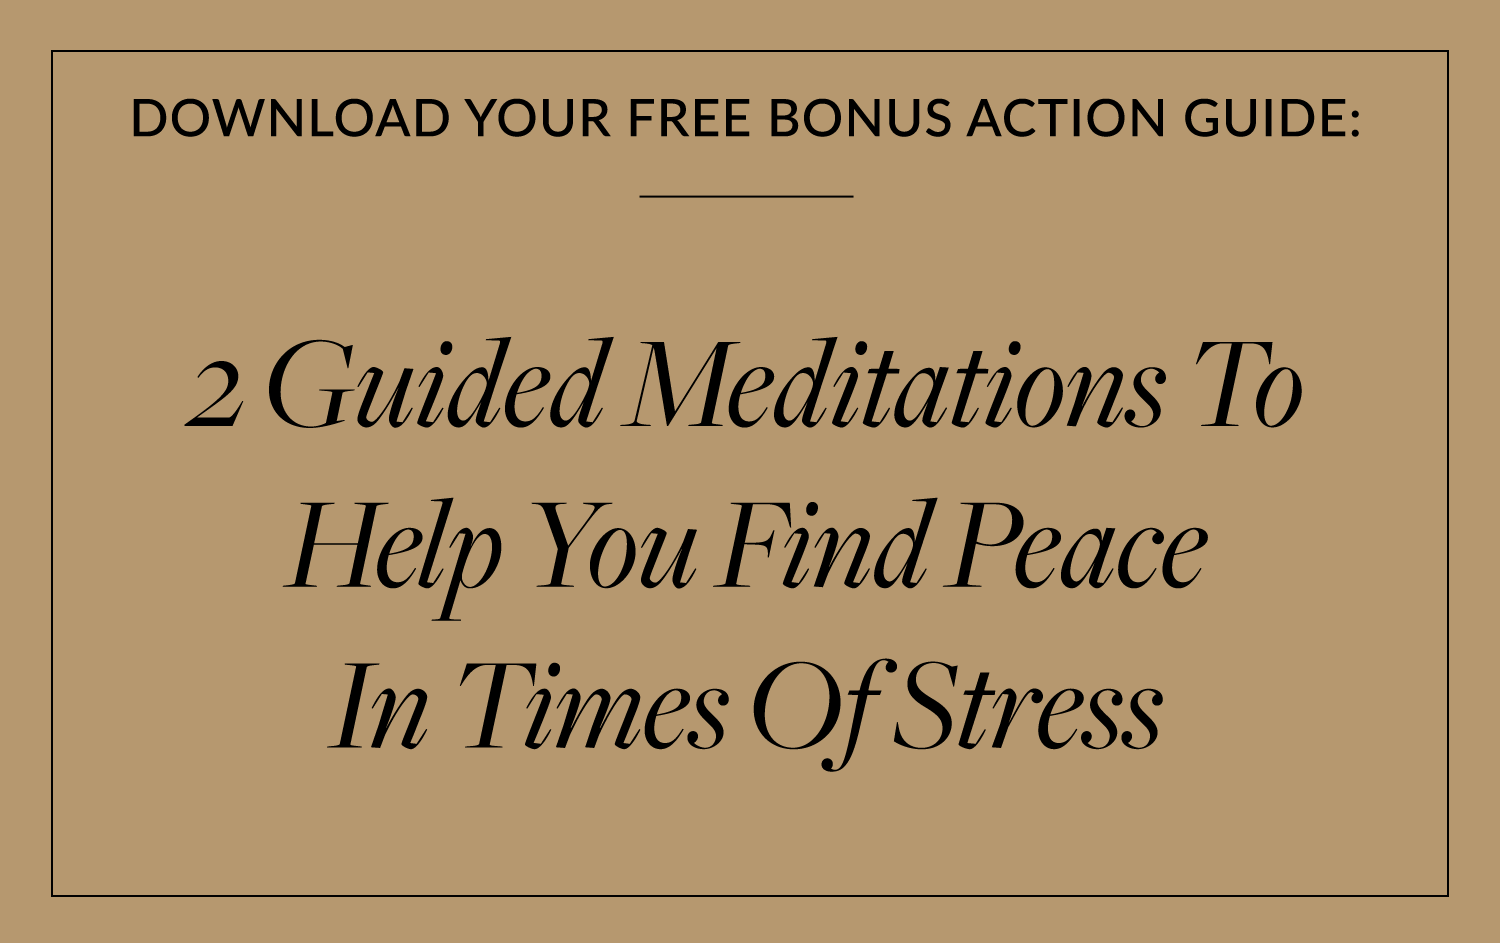 2 Guided Meditations To Help You Find Peace In Times Of Stress